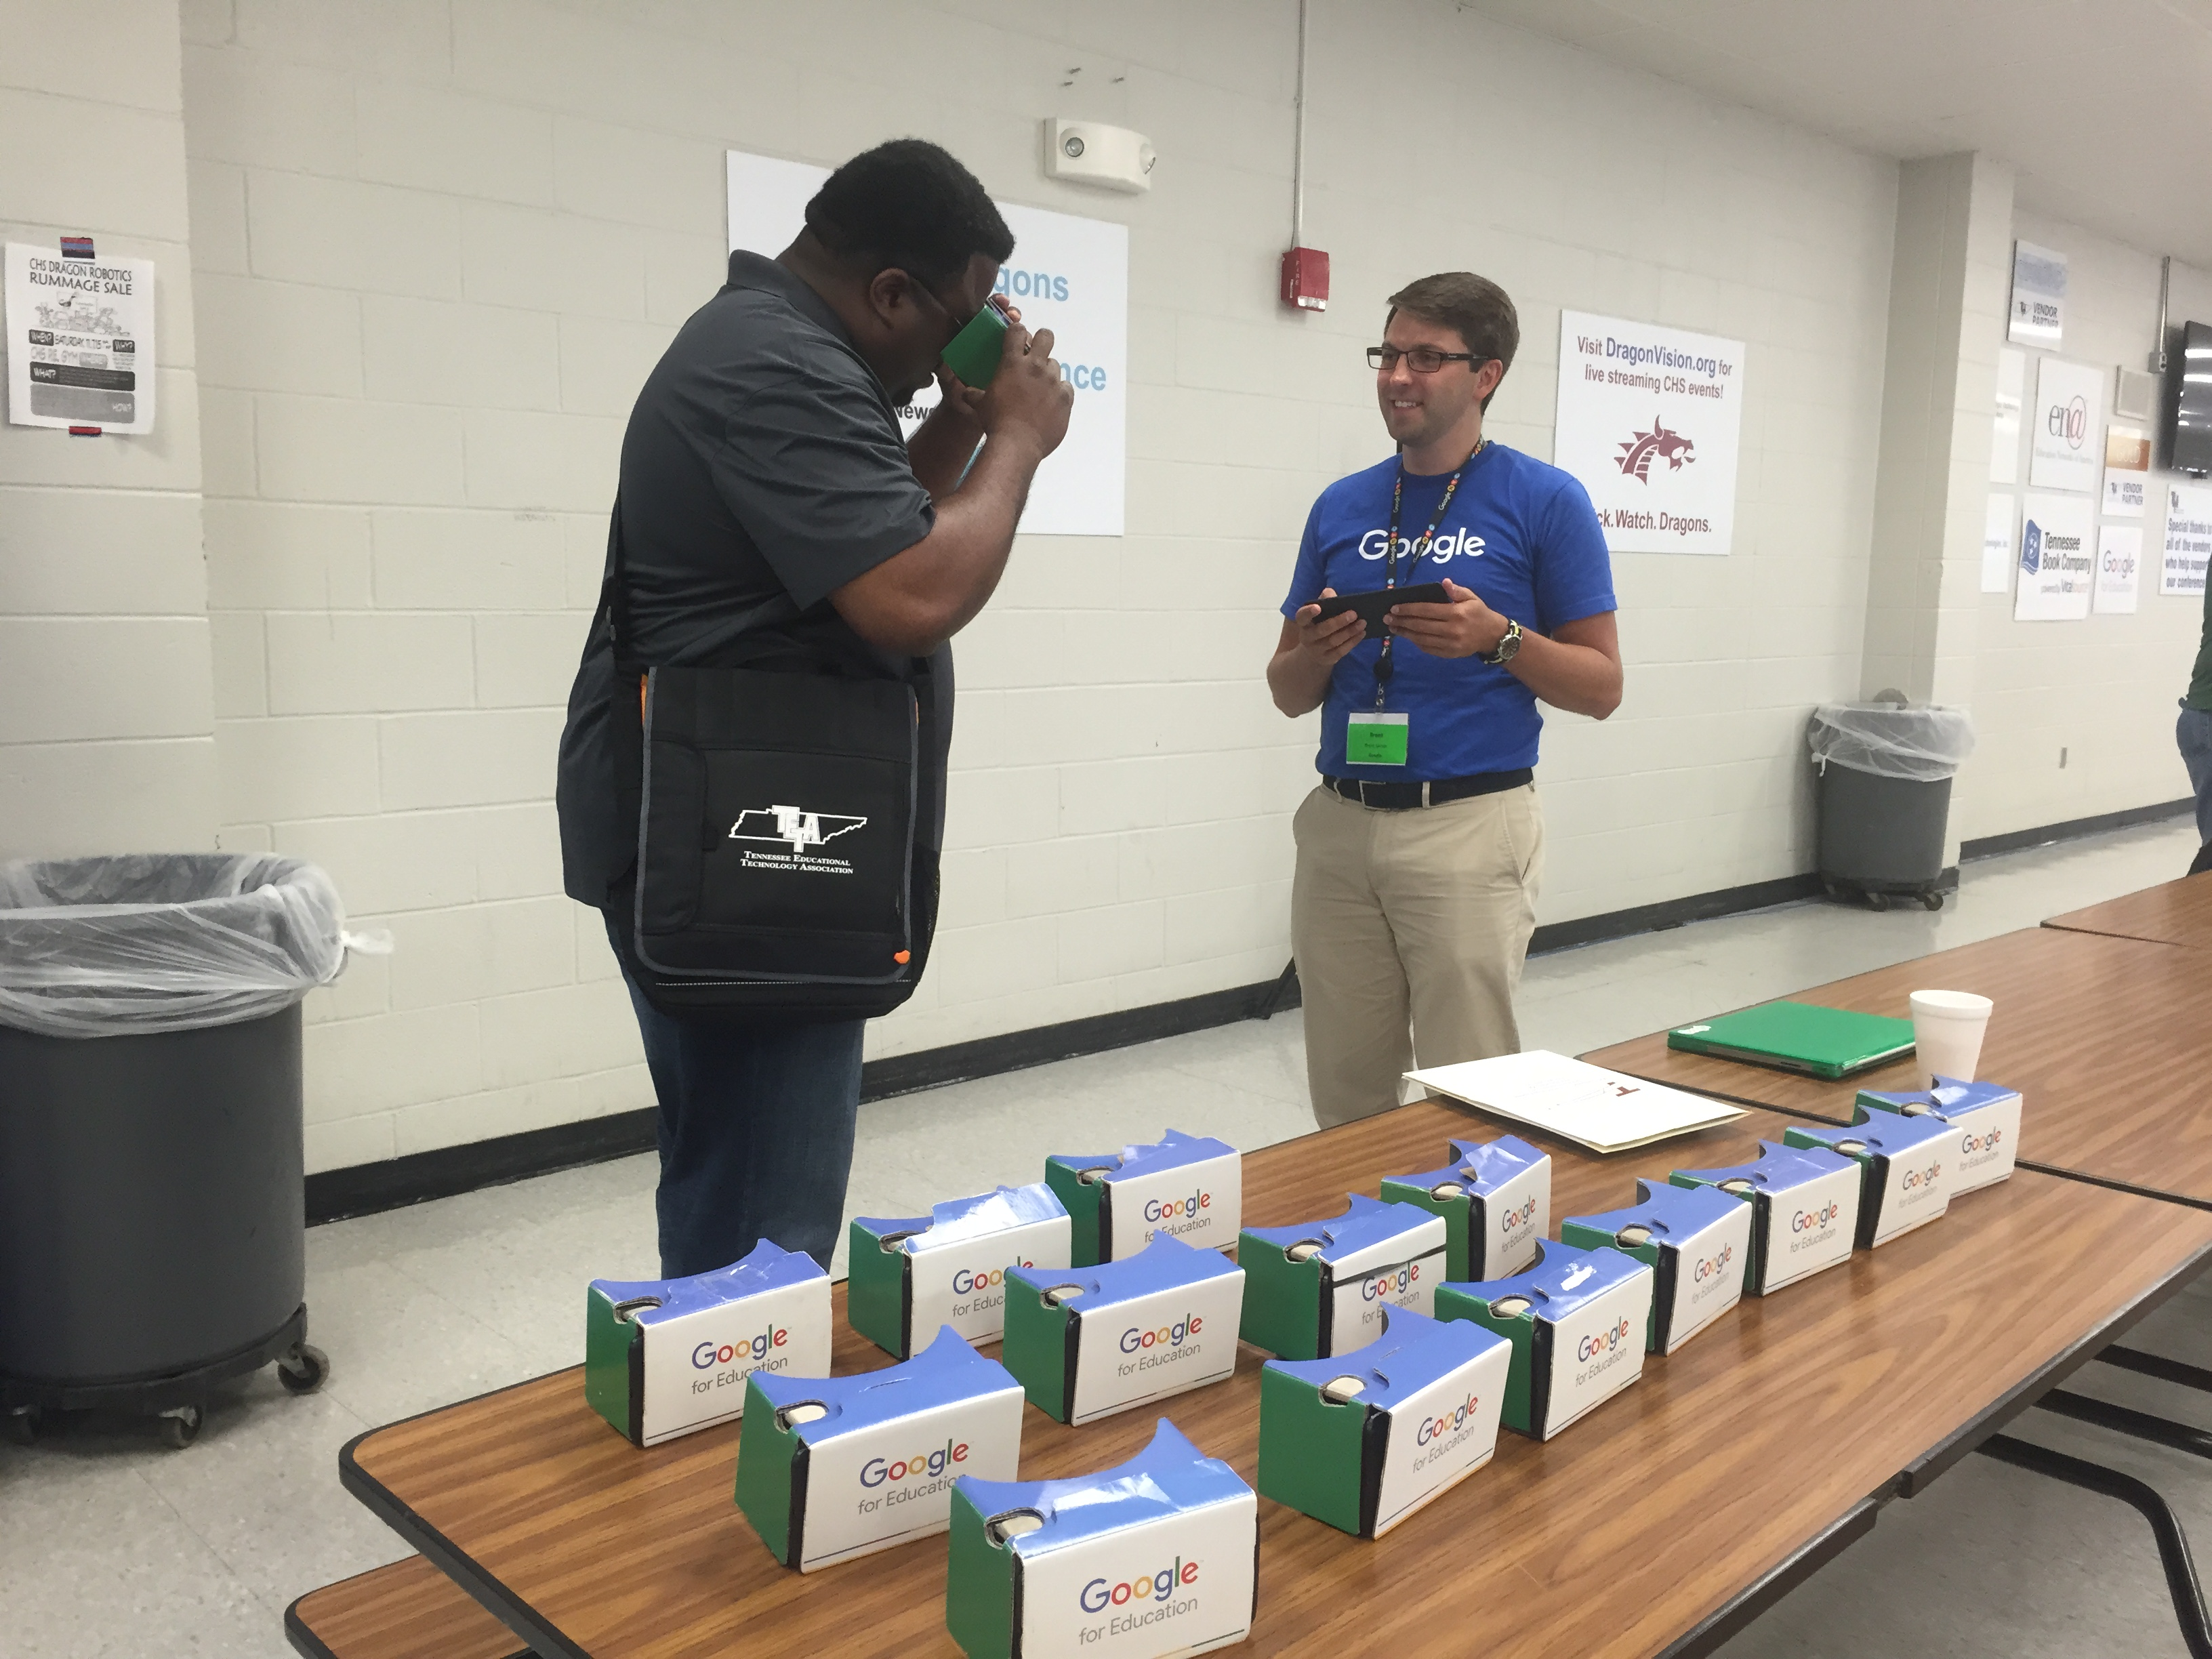 Torrence Myers, a technology specialist at Collierville High School, tries out Google Cardboard at the Tennessee Educational Technology Association's summer institute in Collierville.